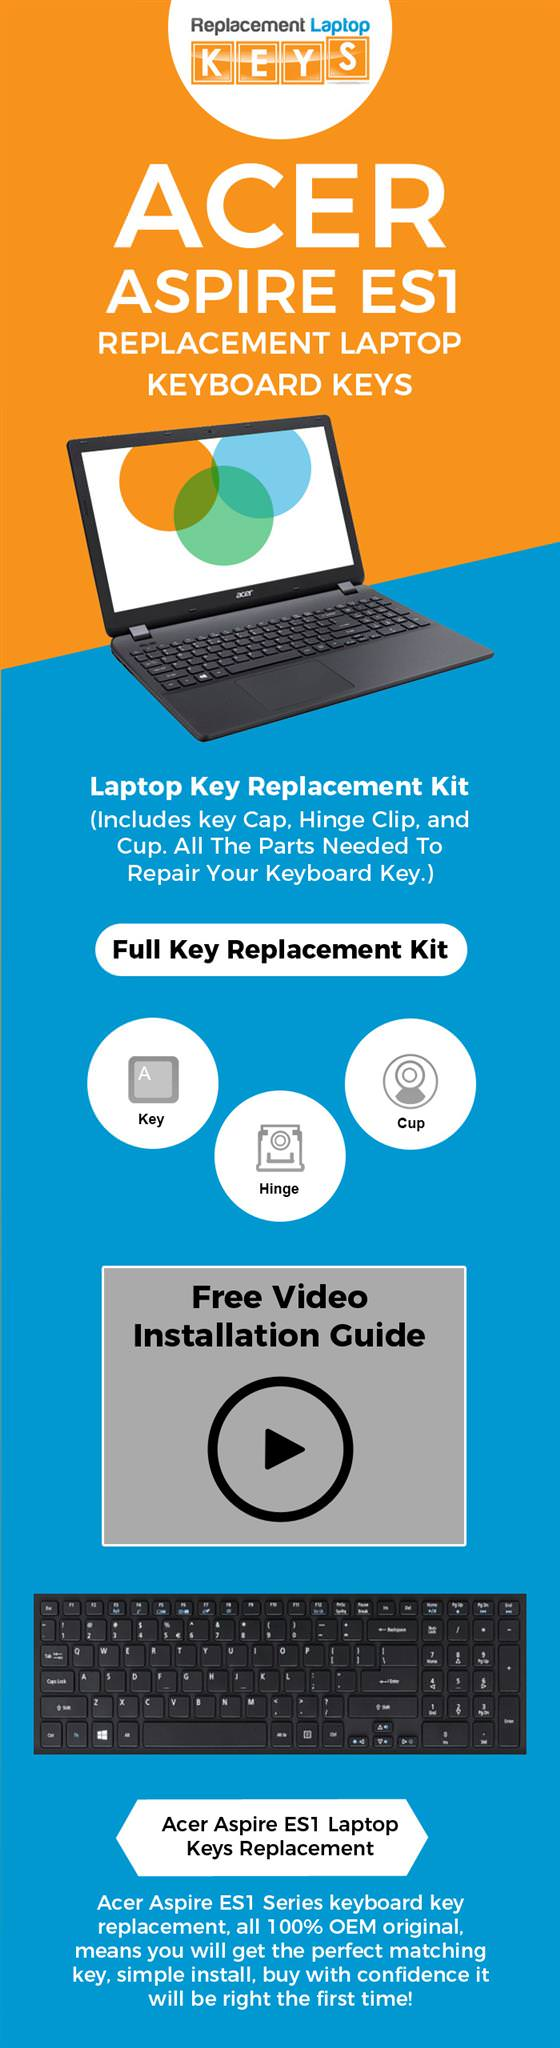 Buy Acer Aspire ES1 Replacement Keyboard Keys Online from Replacement Laptop Keys